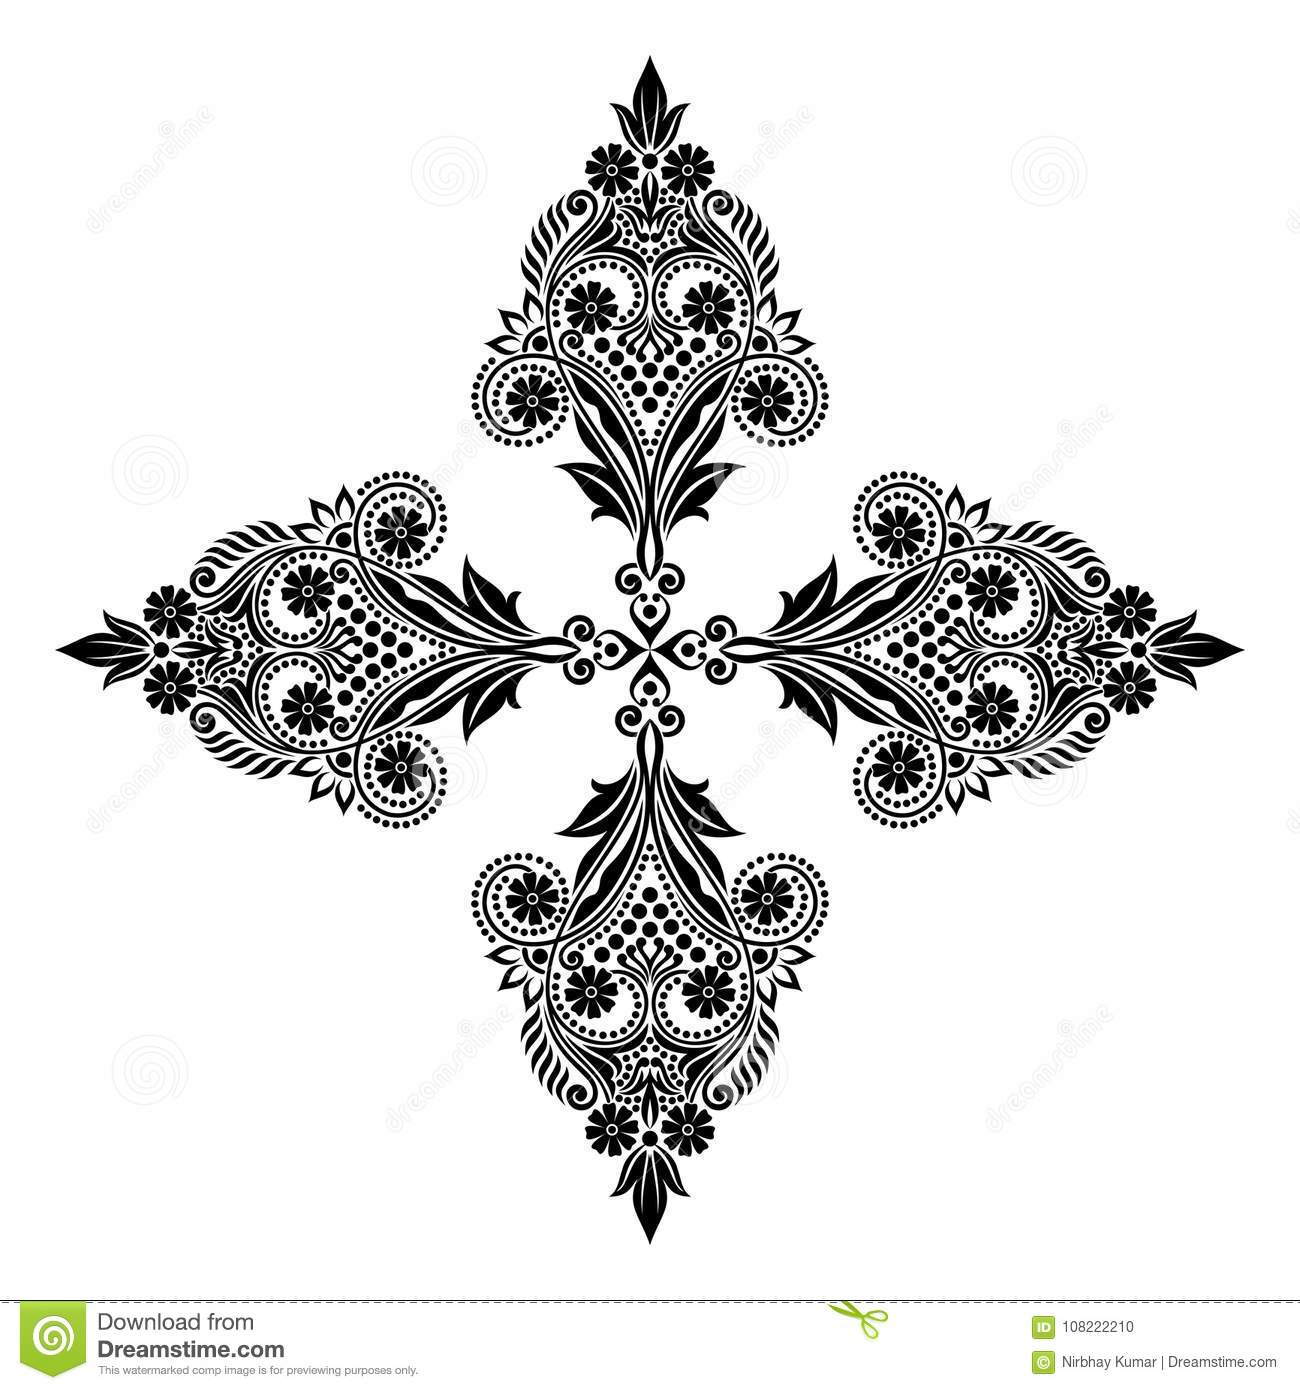 Vector vintage Beautiful monochrome black and white flowers and leaves isolated